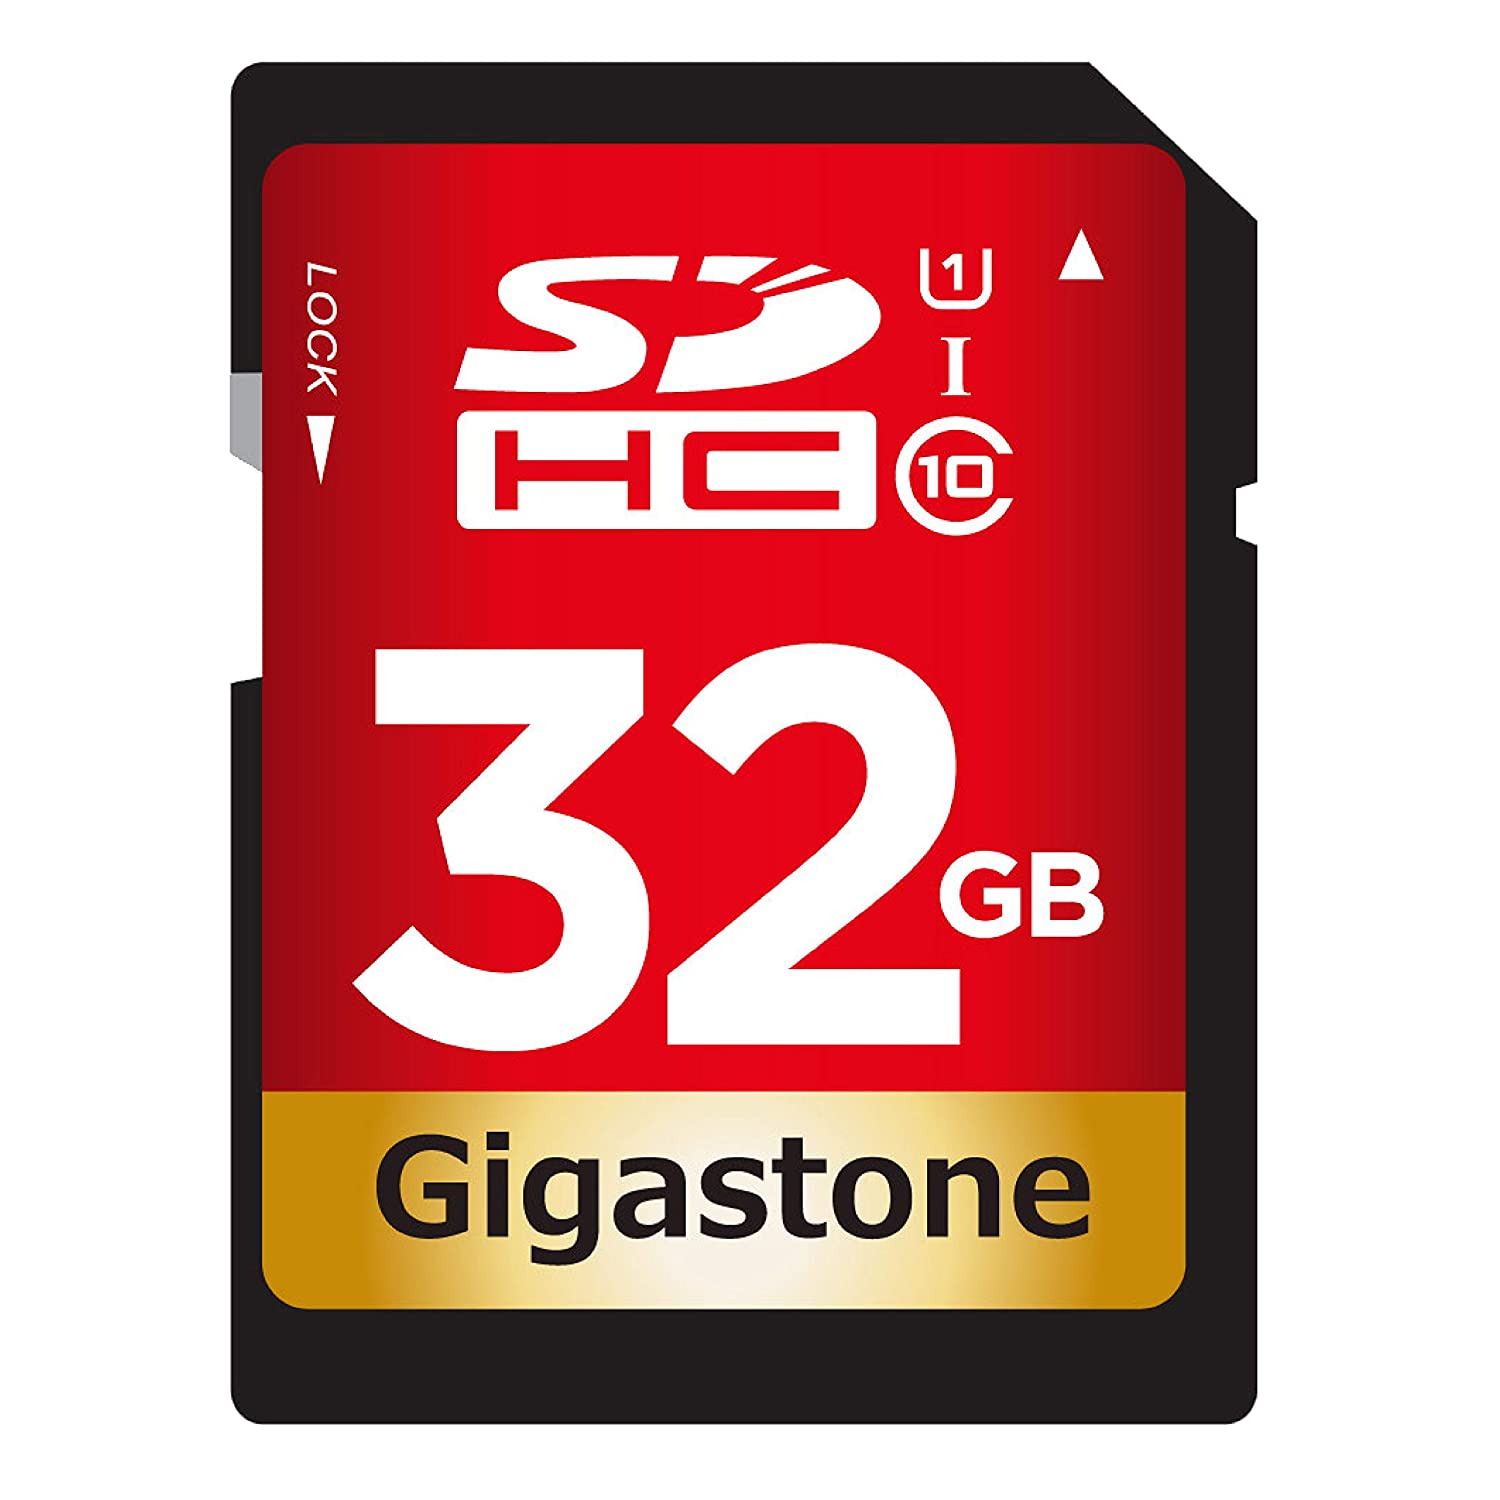 Gigastone PY9-00002 32GB Class 10 UHS-1 U1 Prime SD HC Memory Card Up to 45MB/s [Compatible with Canon EOS Rebel T5 T5i T6 T6i 80D 6D SL1 Nikon D3300 D5500 D5600 D7200 D750 Sony Pentax Kodak Olympus Panasonic] DANE ELECTRONICS GS-SDHCU132G-R